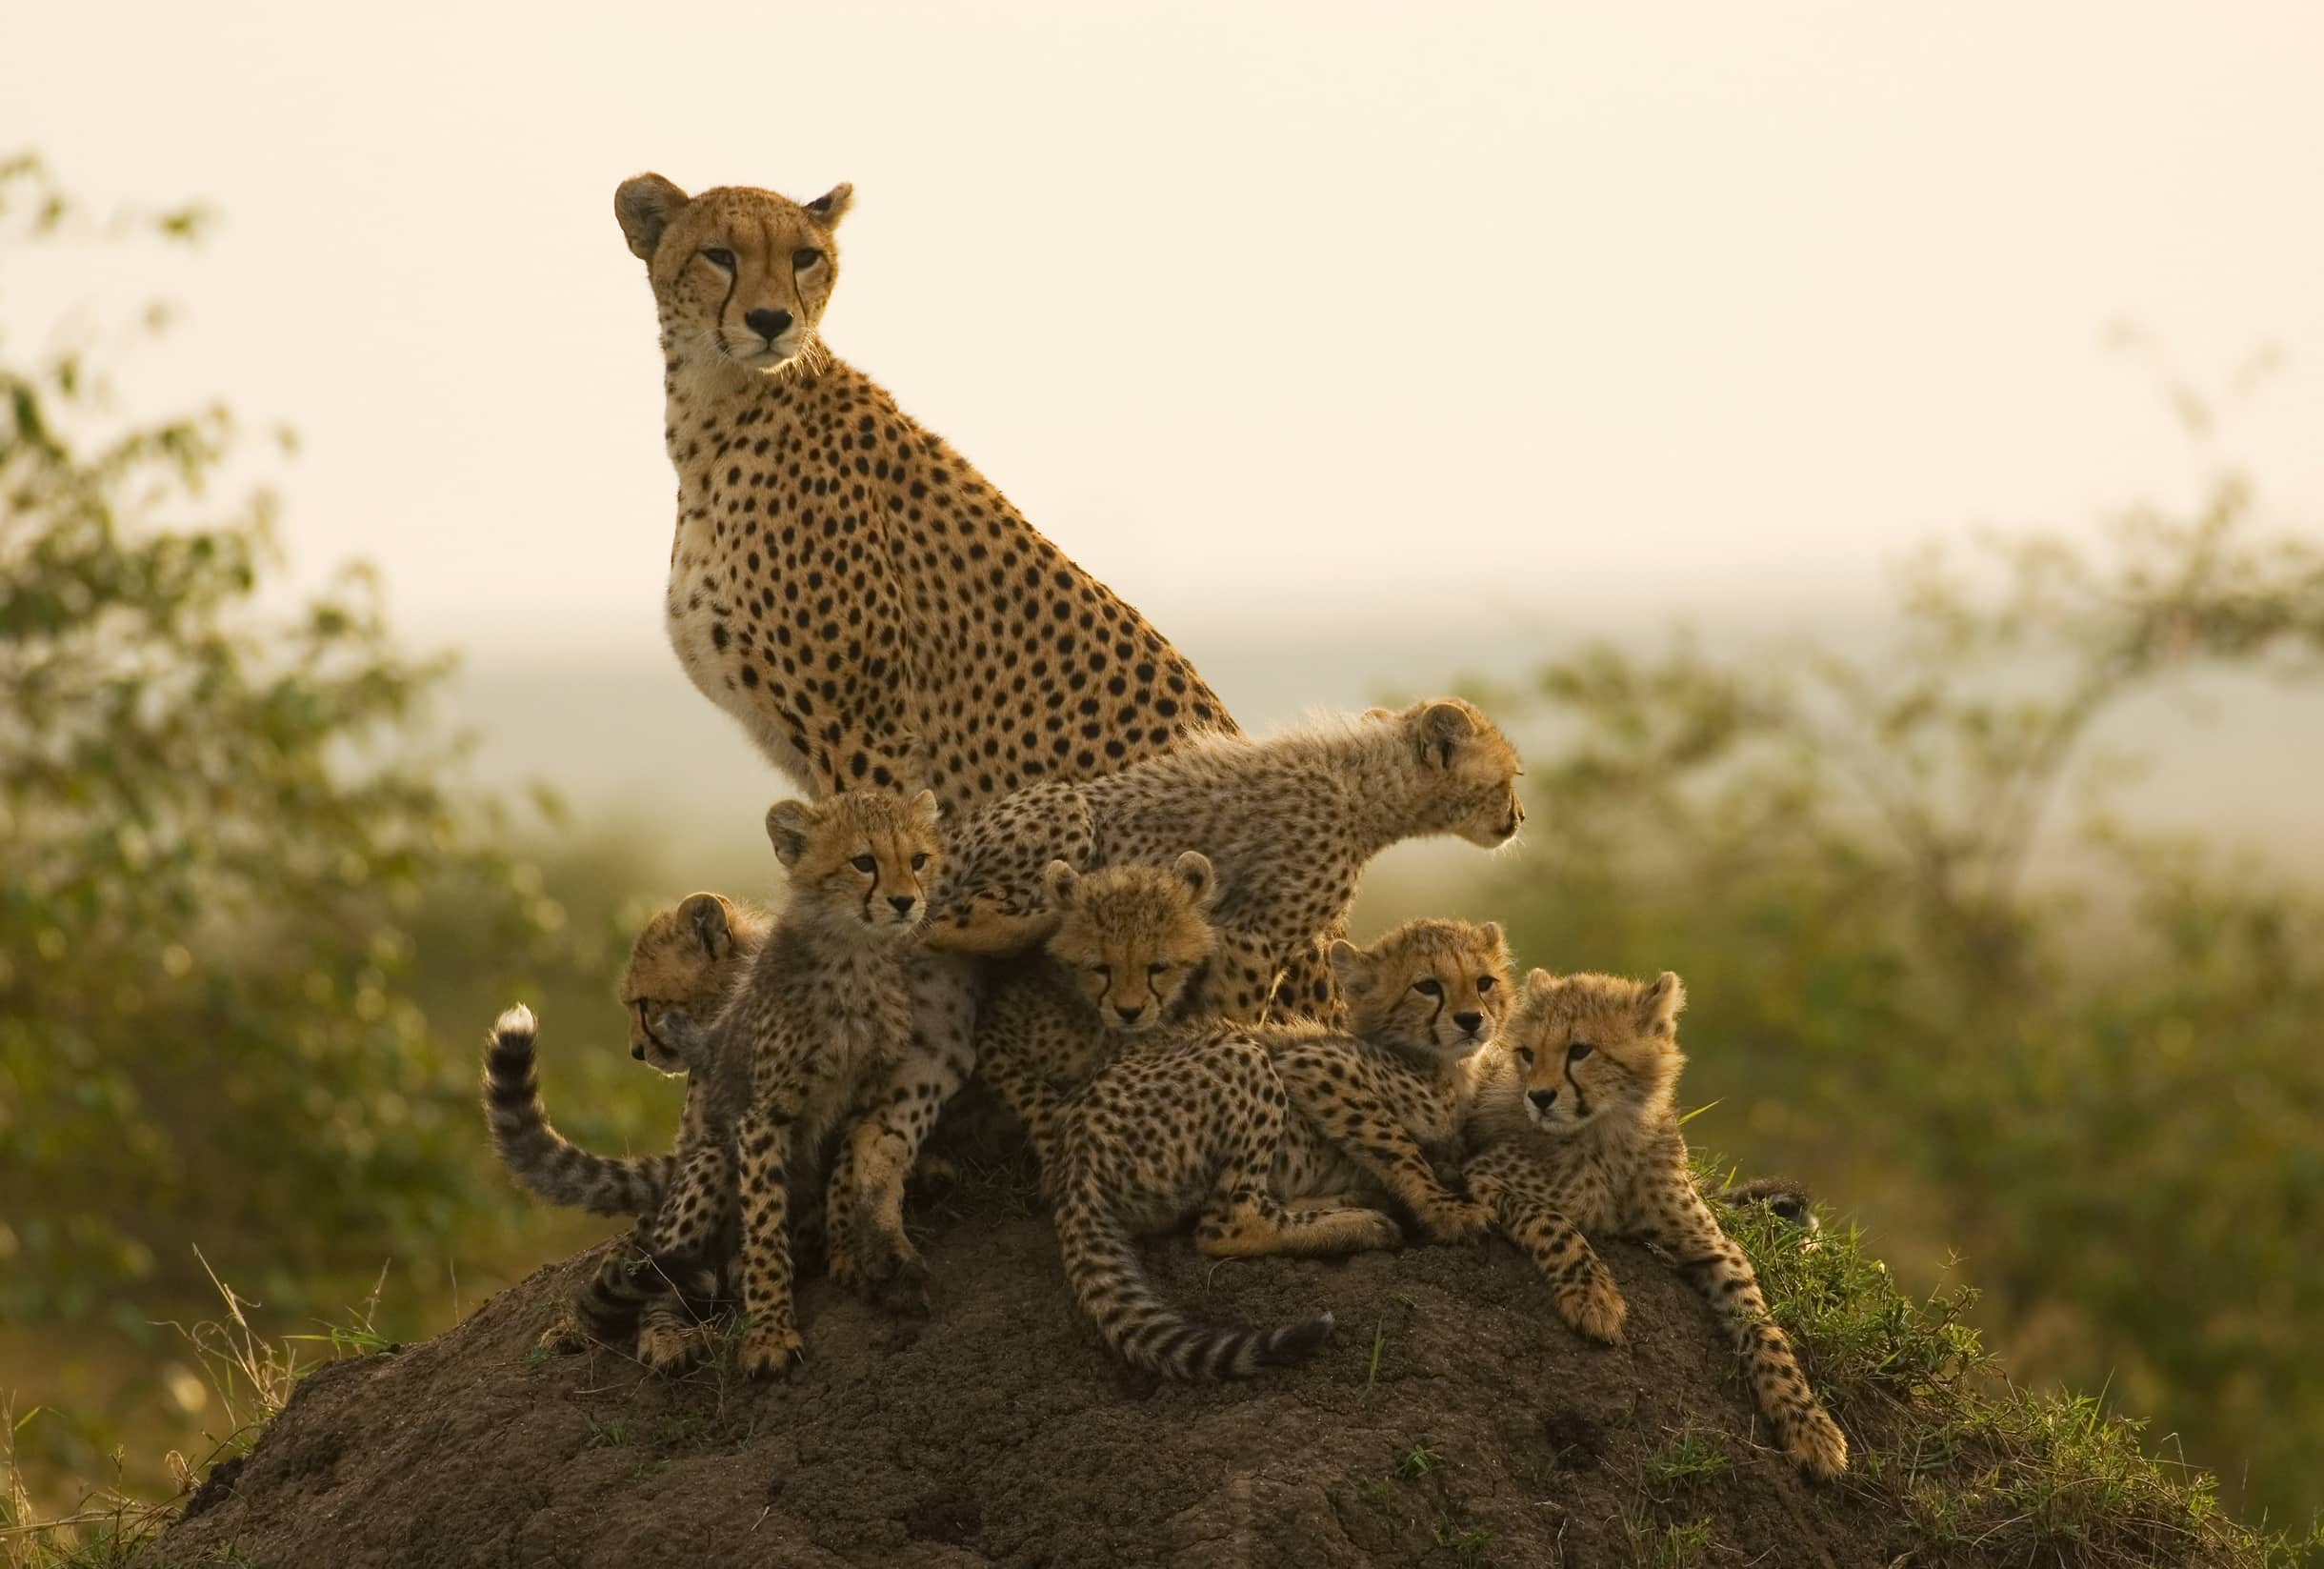 Cheetah mother with cubs on mound